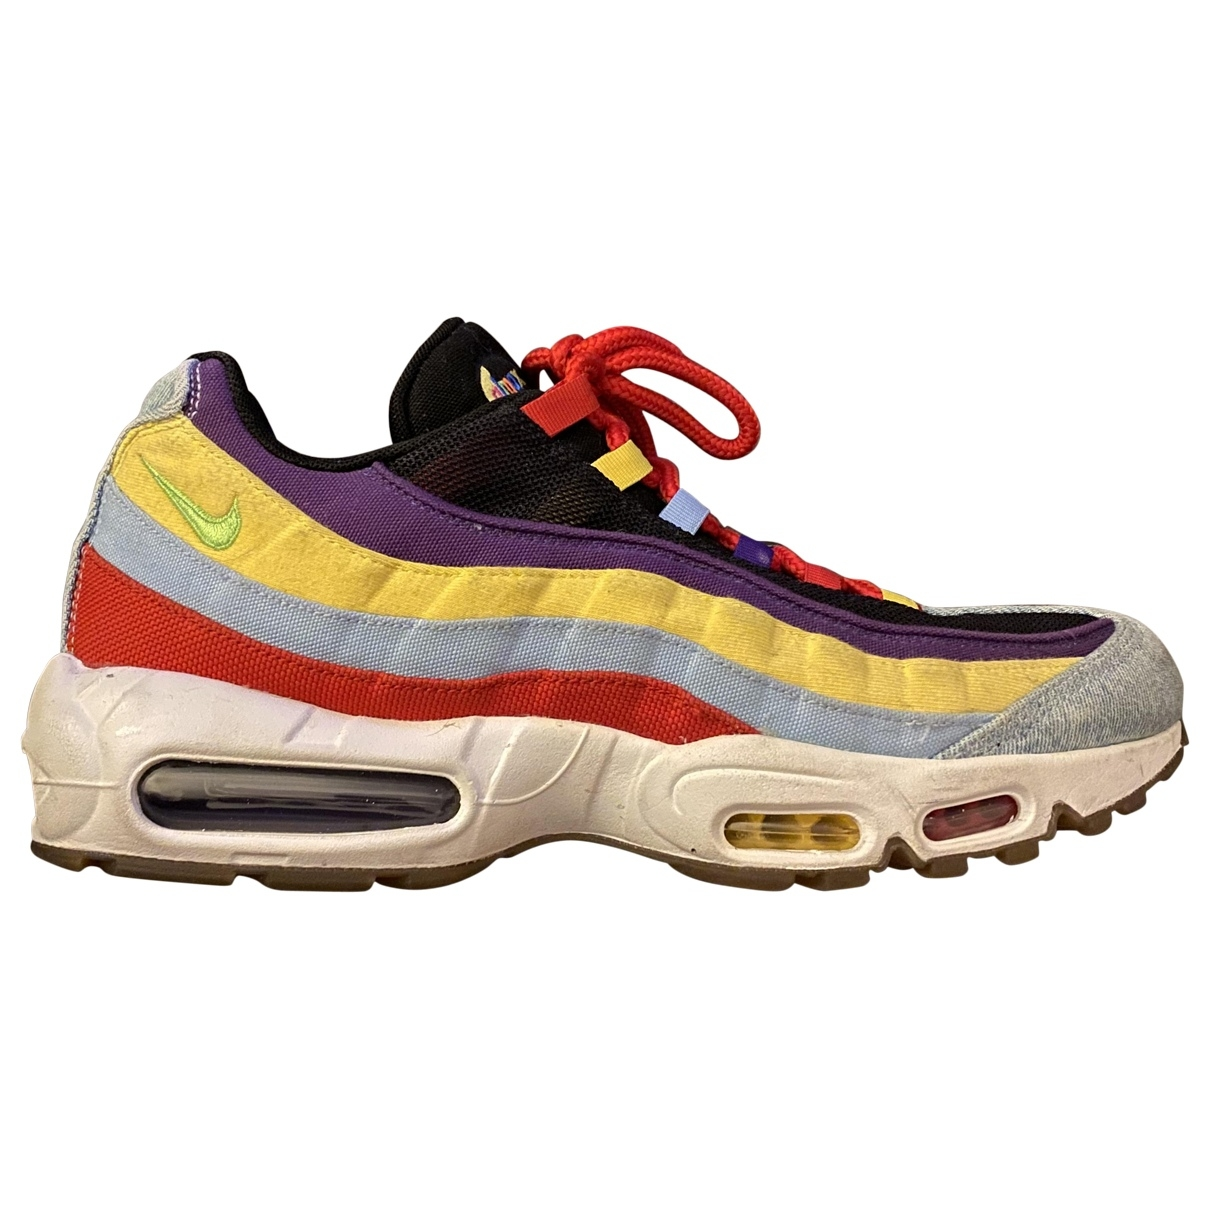 Nike Air Max 95 Multicolour Leather Trainers for Men 11 US